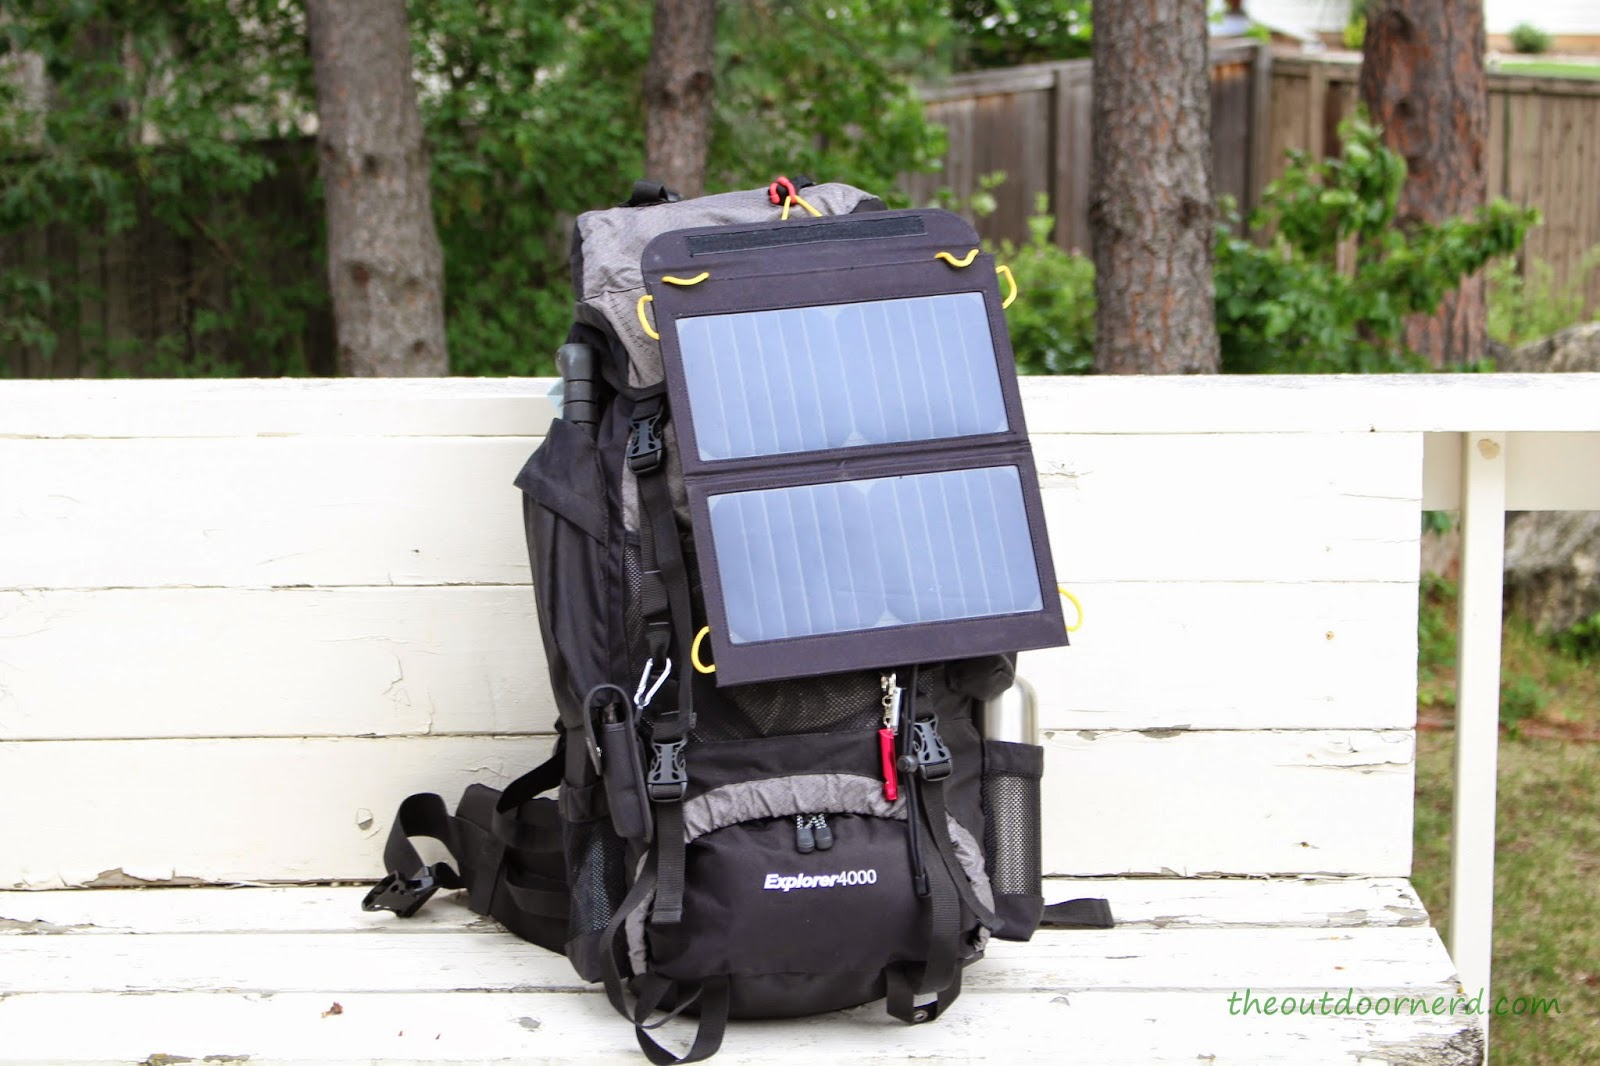 Teton Explorer 4000 Hiking Backpack With Solar Panel: Front View